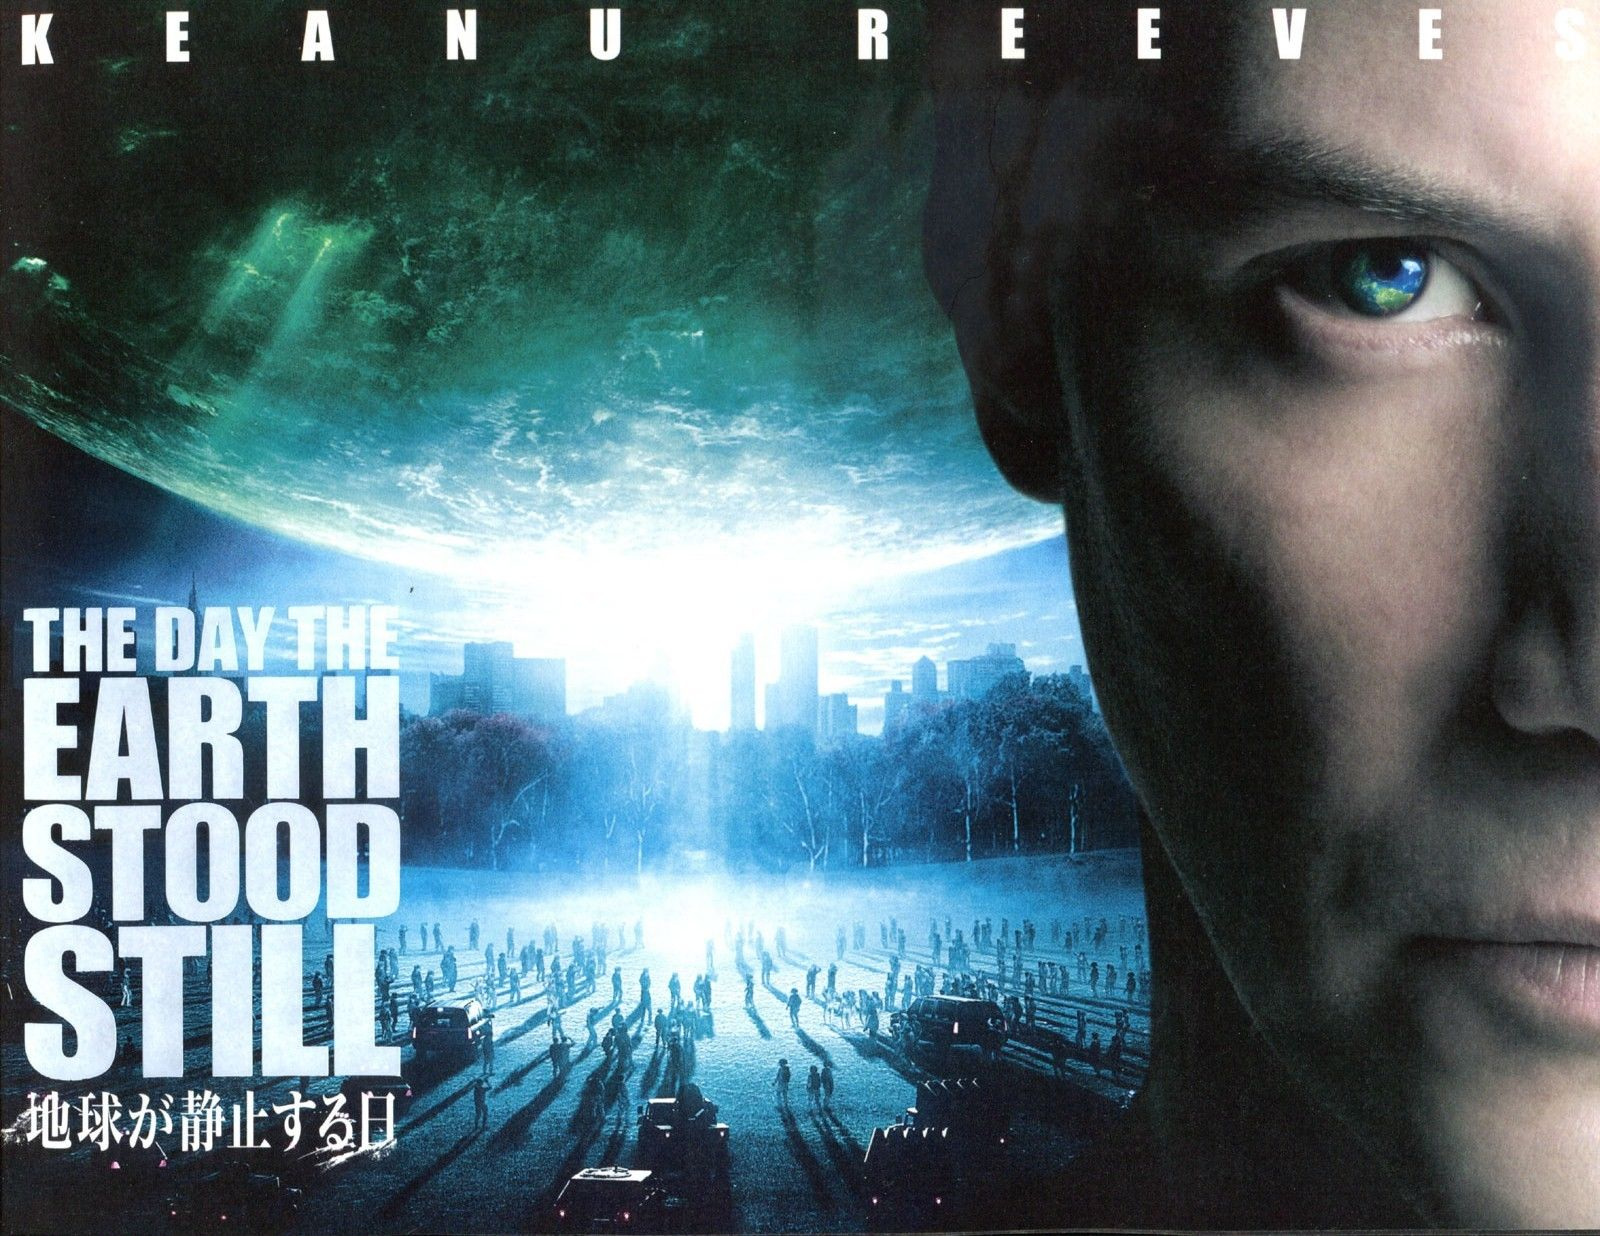 DAY THE EARTH STOOD STILL Promo, Unused, Keanu Reeves, 2008, Movie booklet